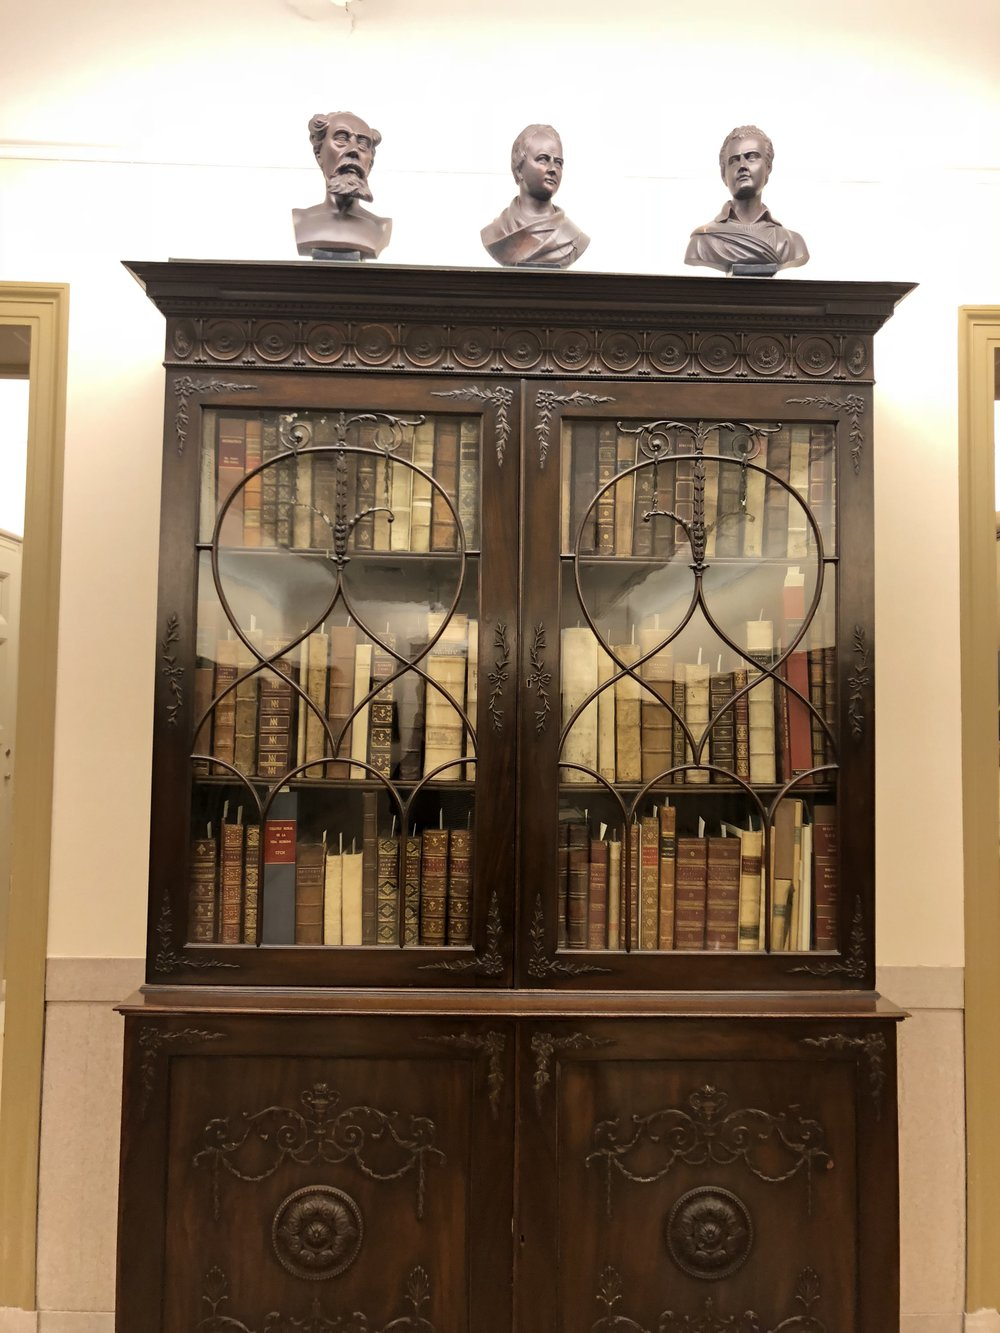 The Moncure Biddle Collection of Horace-Rare Books-Free Library of Philadelphia  The guide referred to Horace as a Roman success story.